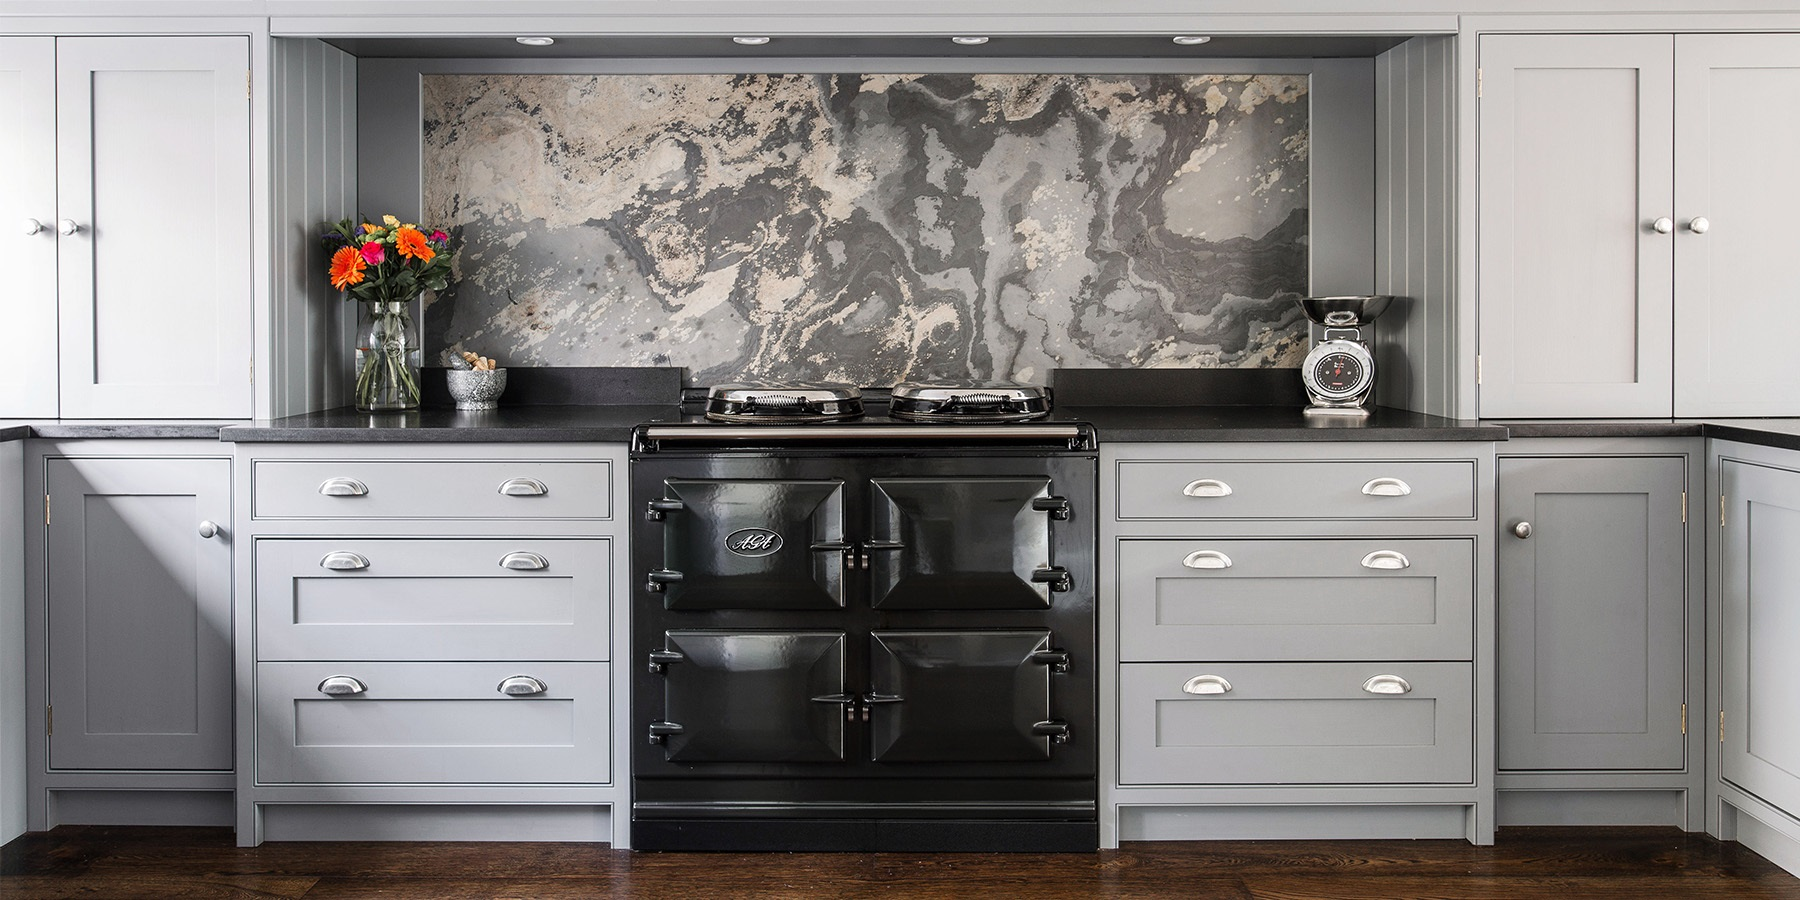 Luxurious Shaker Kitchen With Marble Splashback & AGA - Handmade Wellsdown shaker kitchen in grey, with beautiful marble splashback and classic AGA Total Control.